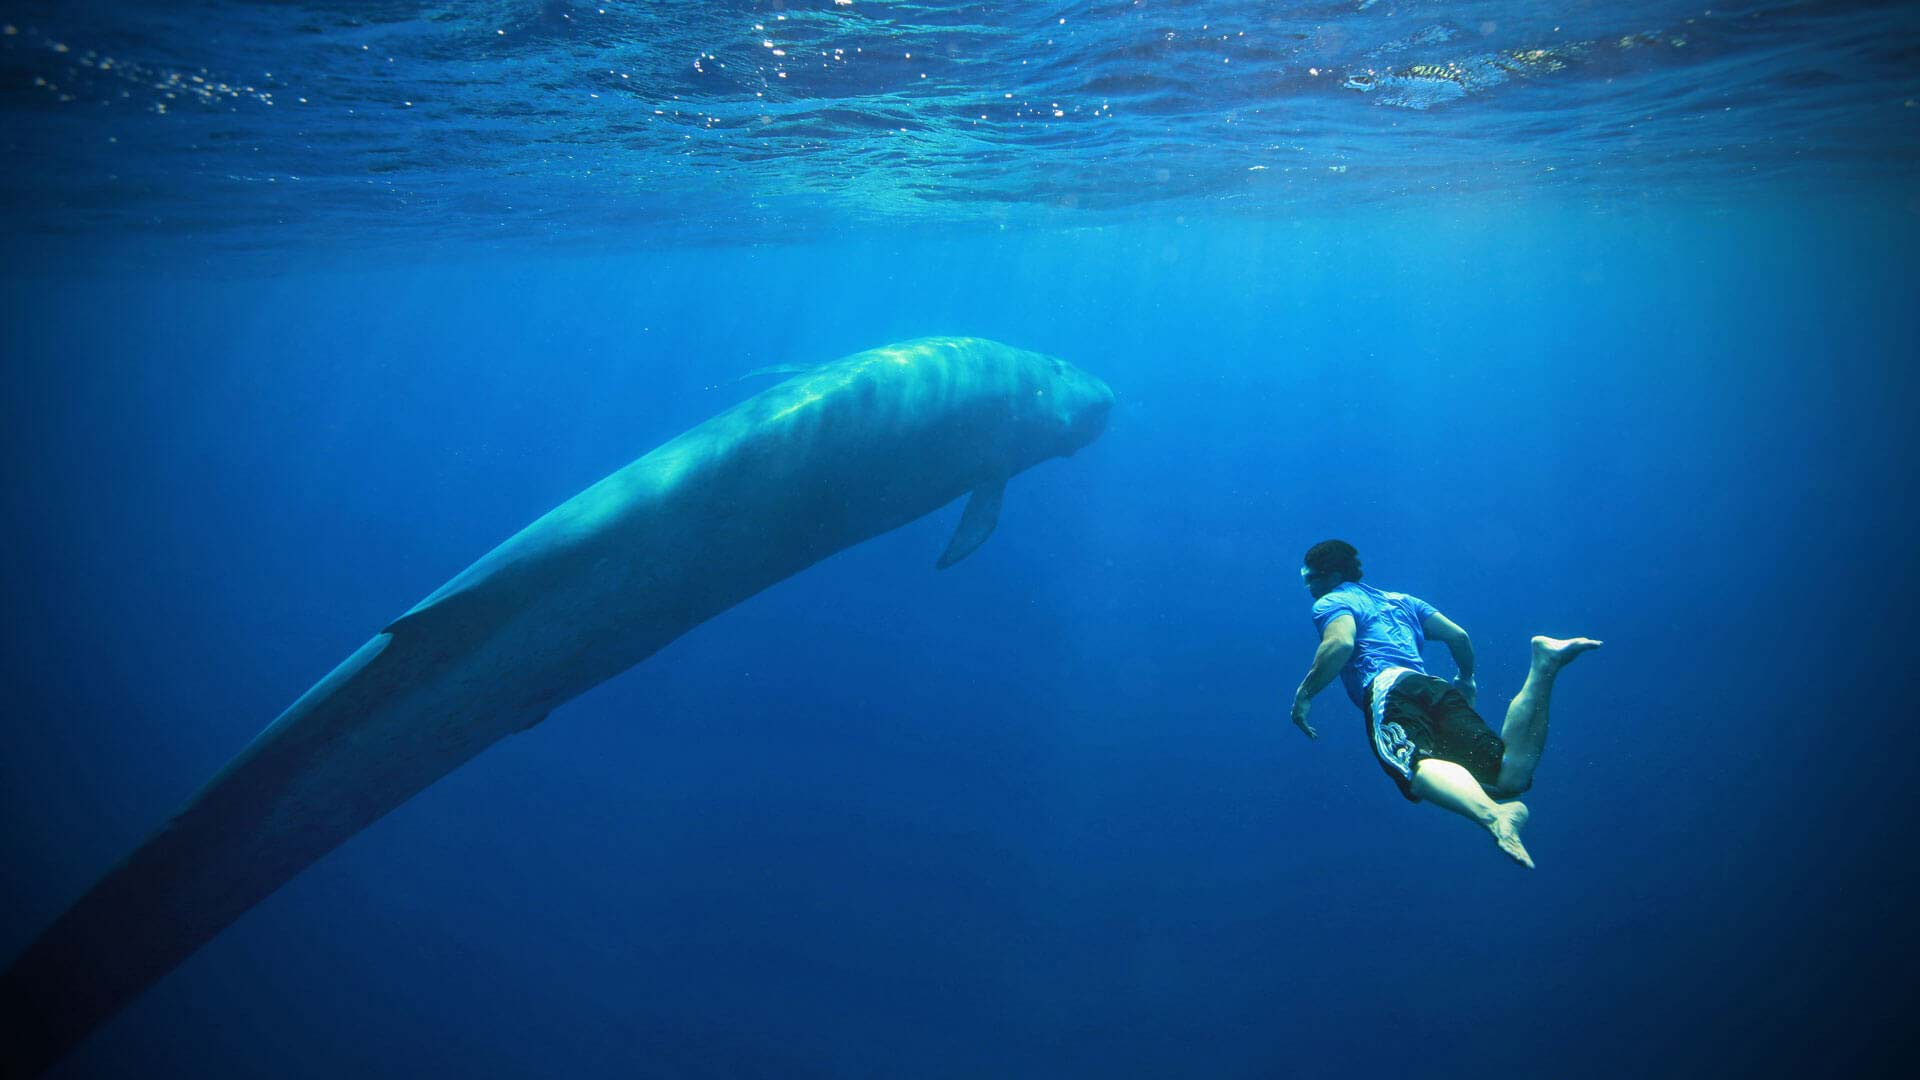 Blue Whale Watching Holidays & Expeditions - Natural World Safaris